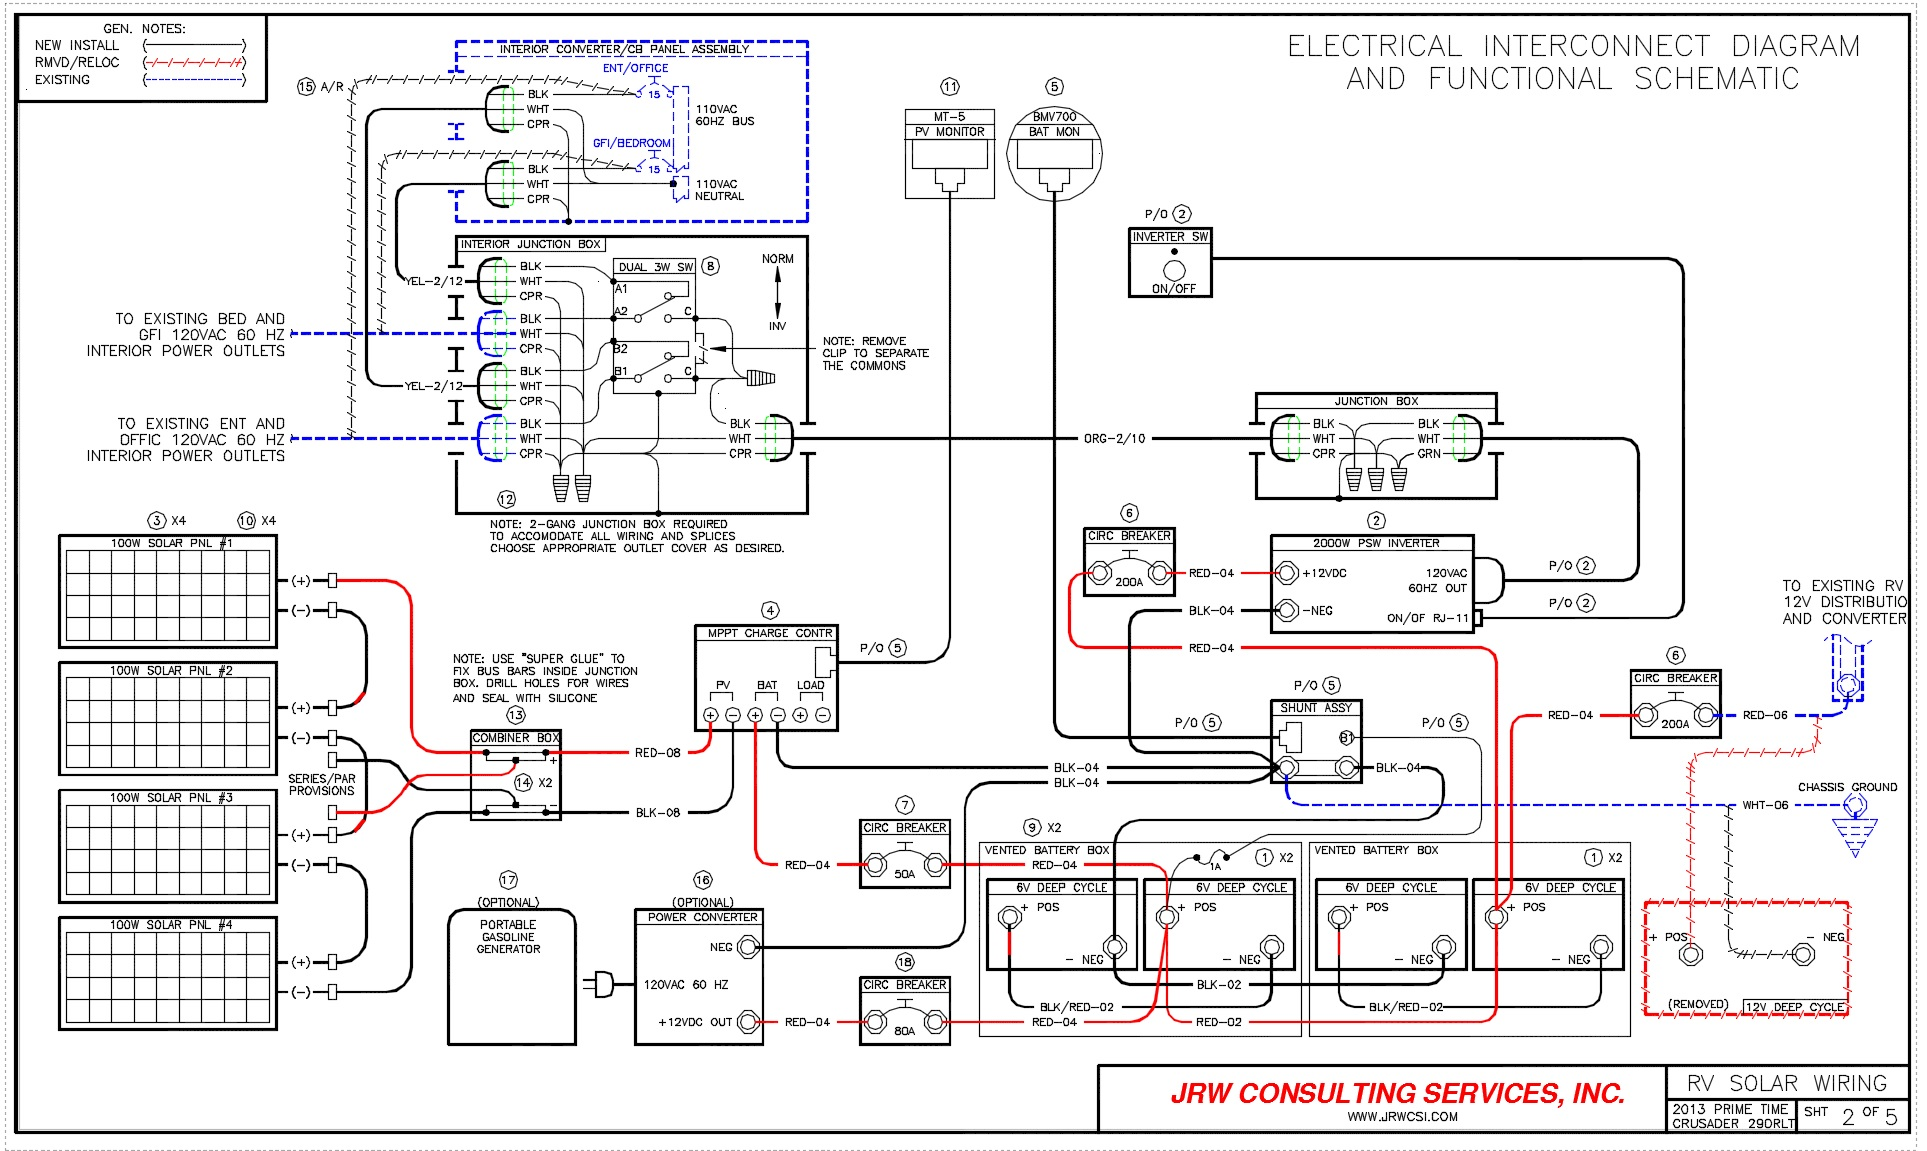 RV SOLAR SHT 22 rv power converter wiring diagram rv microwave wiring diagram RV Power Inverter Wiring Diagram at fashall.co